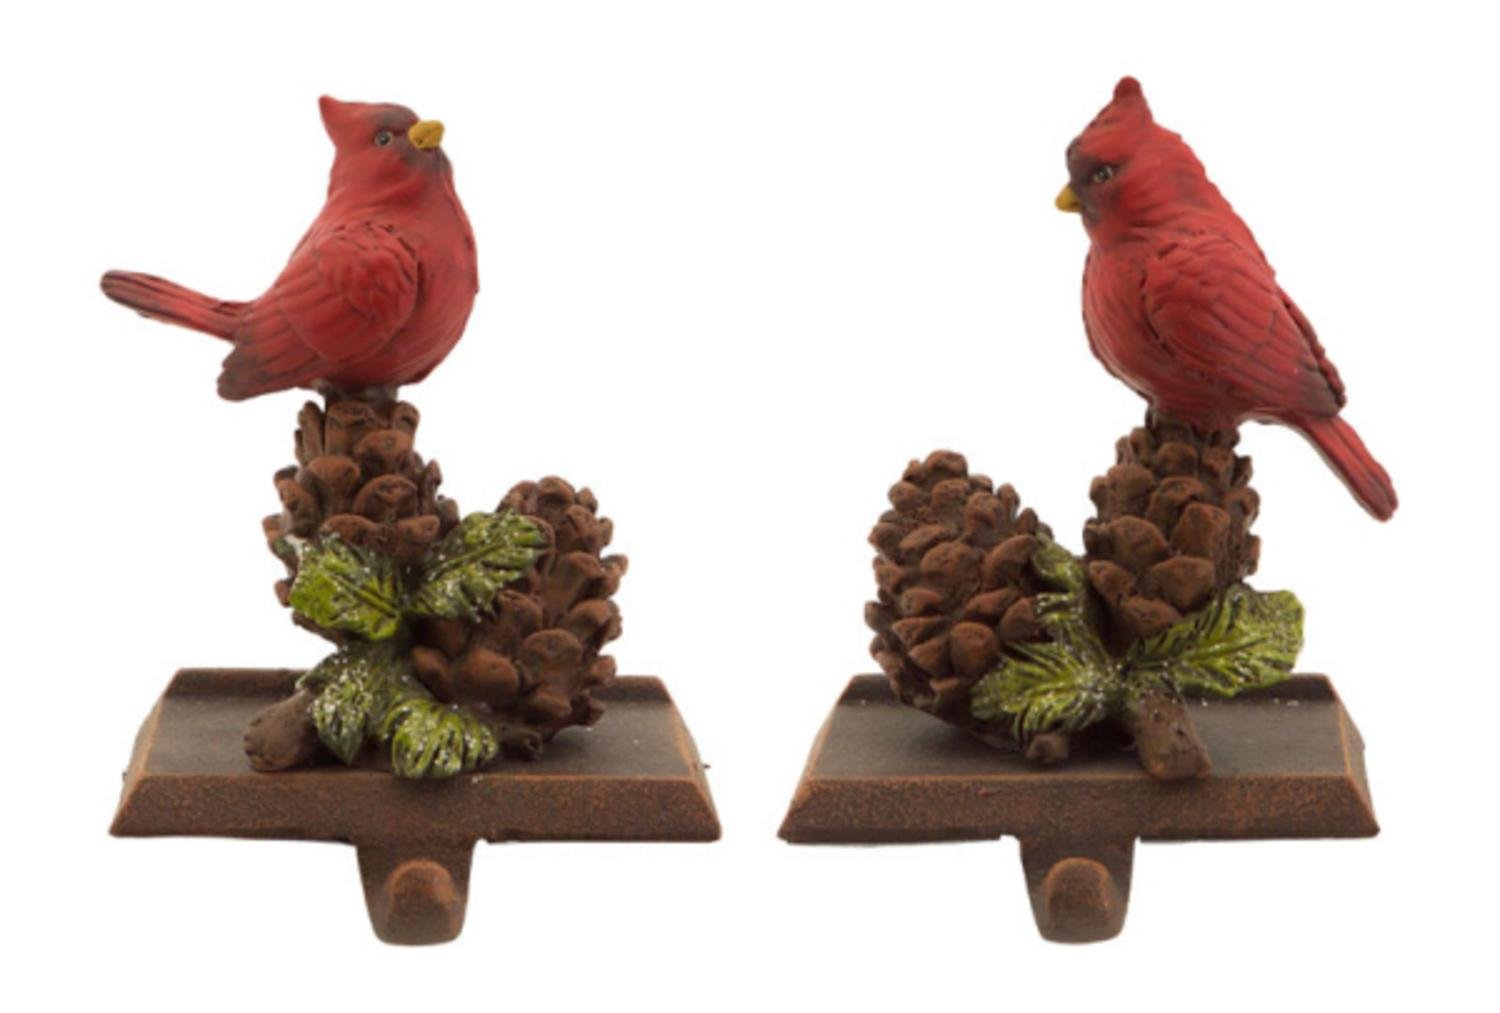 Pack of 6 In the Birches Red Cardinal with Pine Cones Christmas Stocking Holder 2-Piece Sets 6.5''